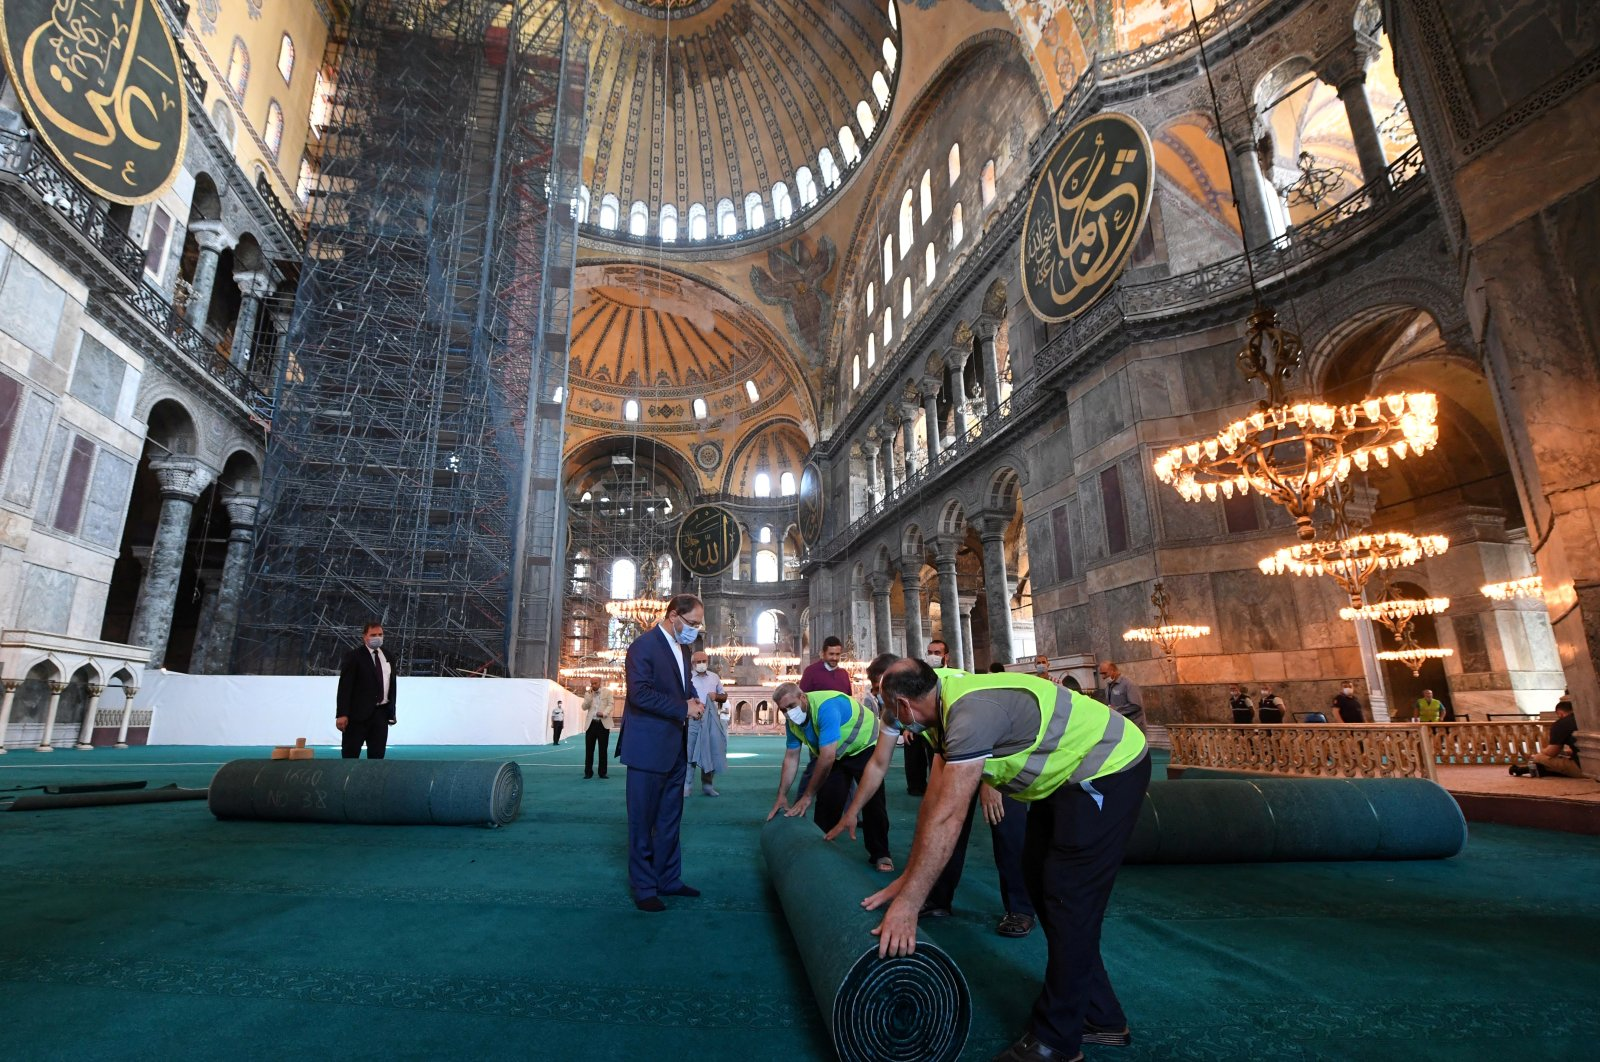 Head of Turkey's Religious Affairs Directorate (Diyanet) Ali Erbaş visits Hagia Sophia Mosque as workers lay carpets in Istanbul, July 22, 2020. (Reuters Photo)